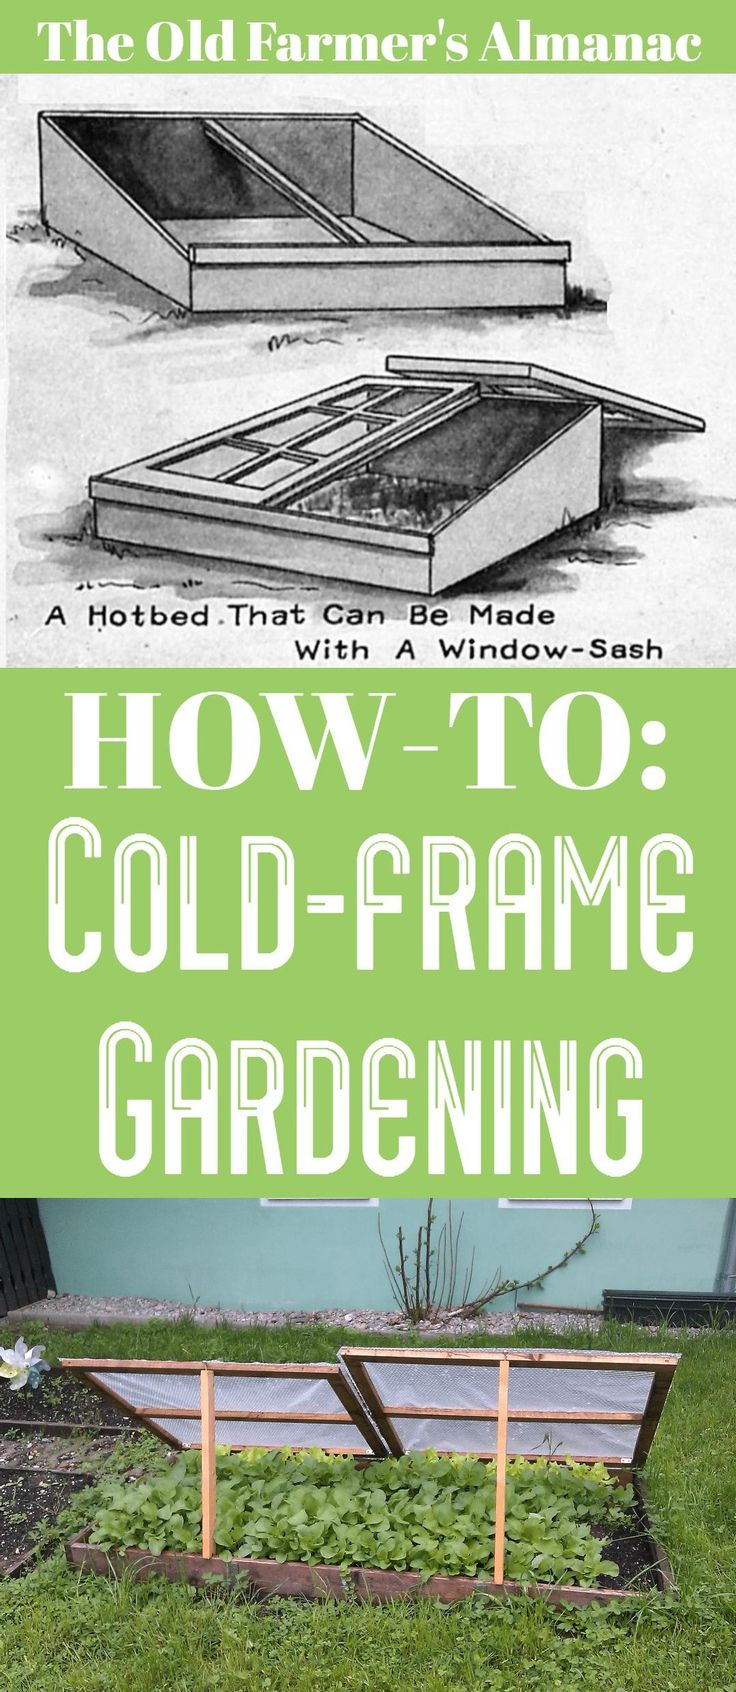 238 Best Images About Garden Planning On Pinterest Farmers Almanac Garden Planner And The Old